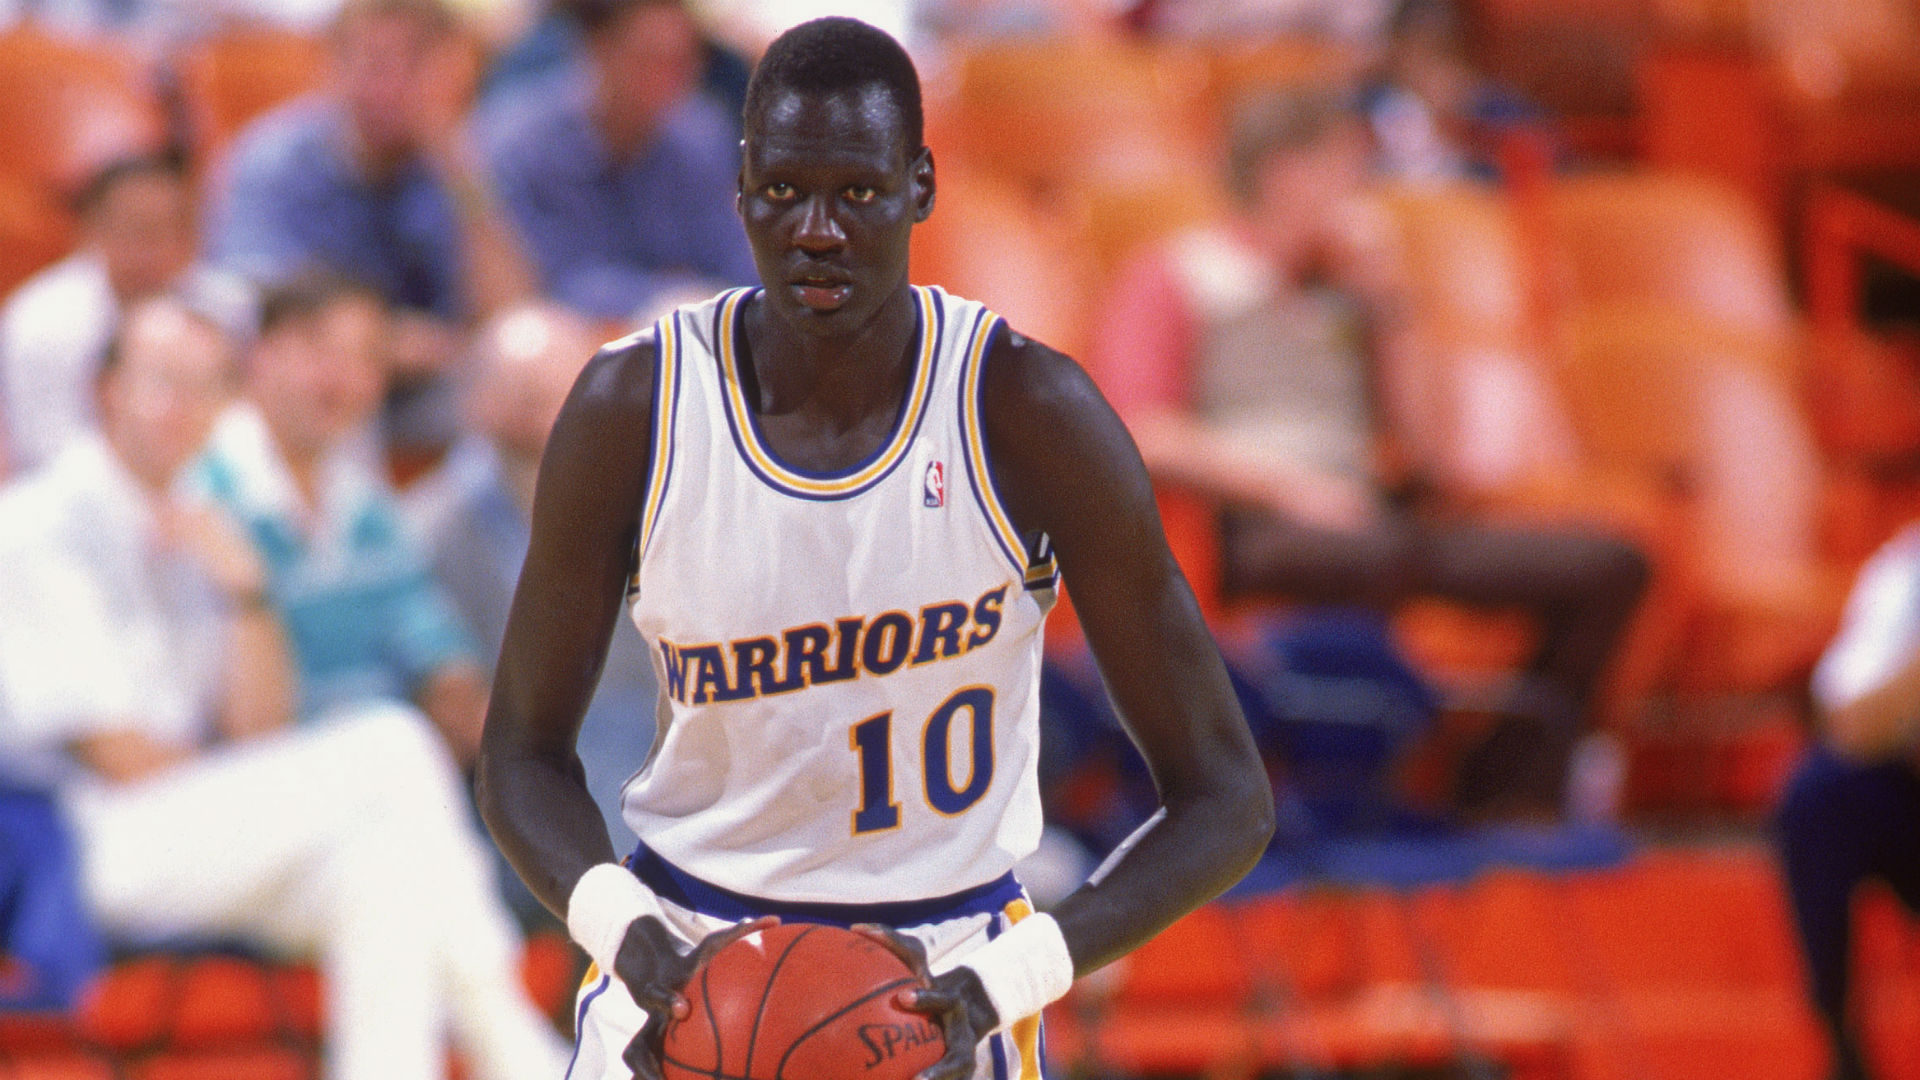 Manute Bol May Have Played in the National Basketball Association at 50 Years Old